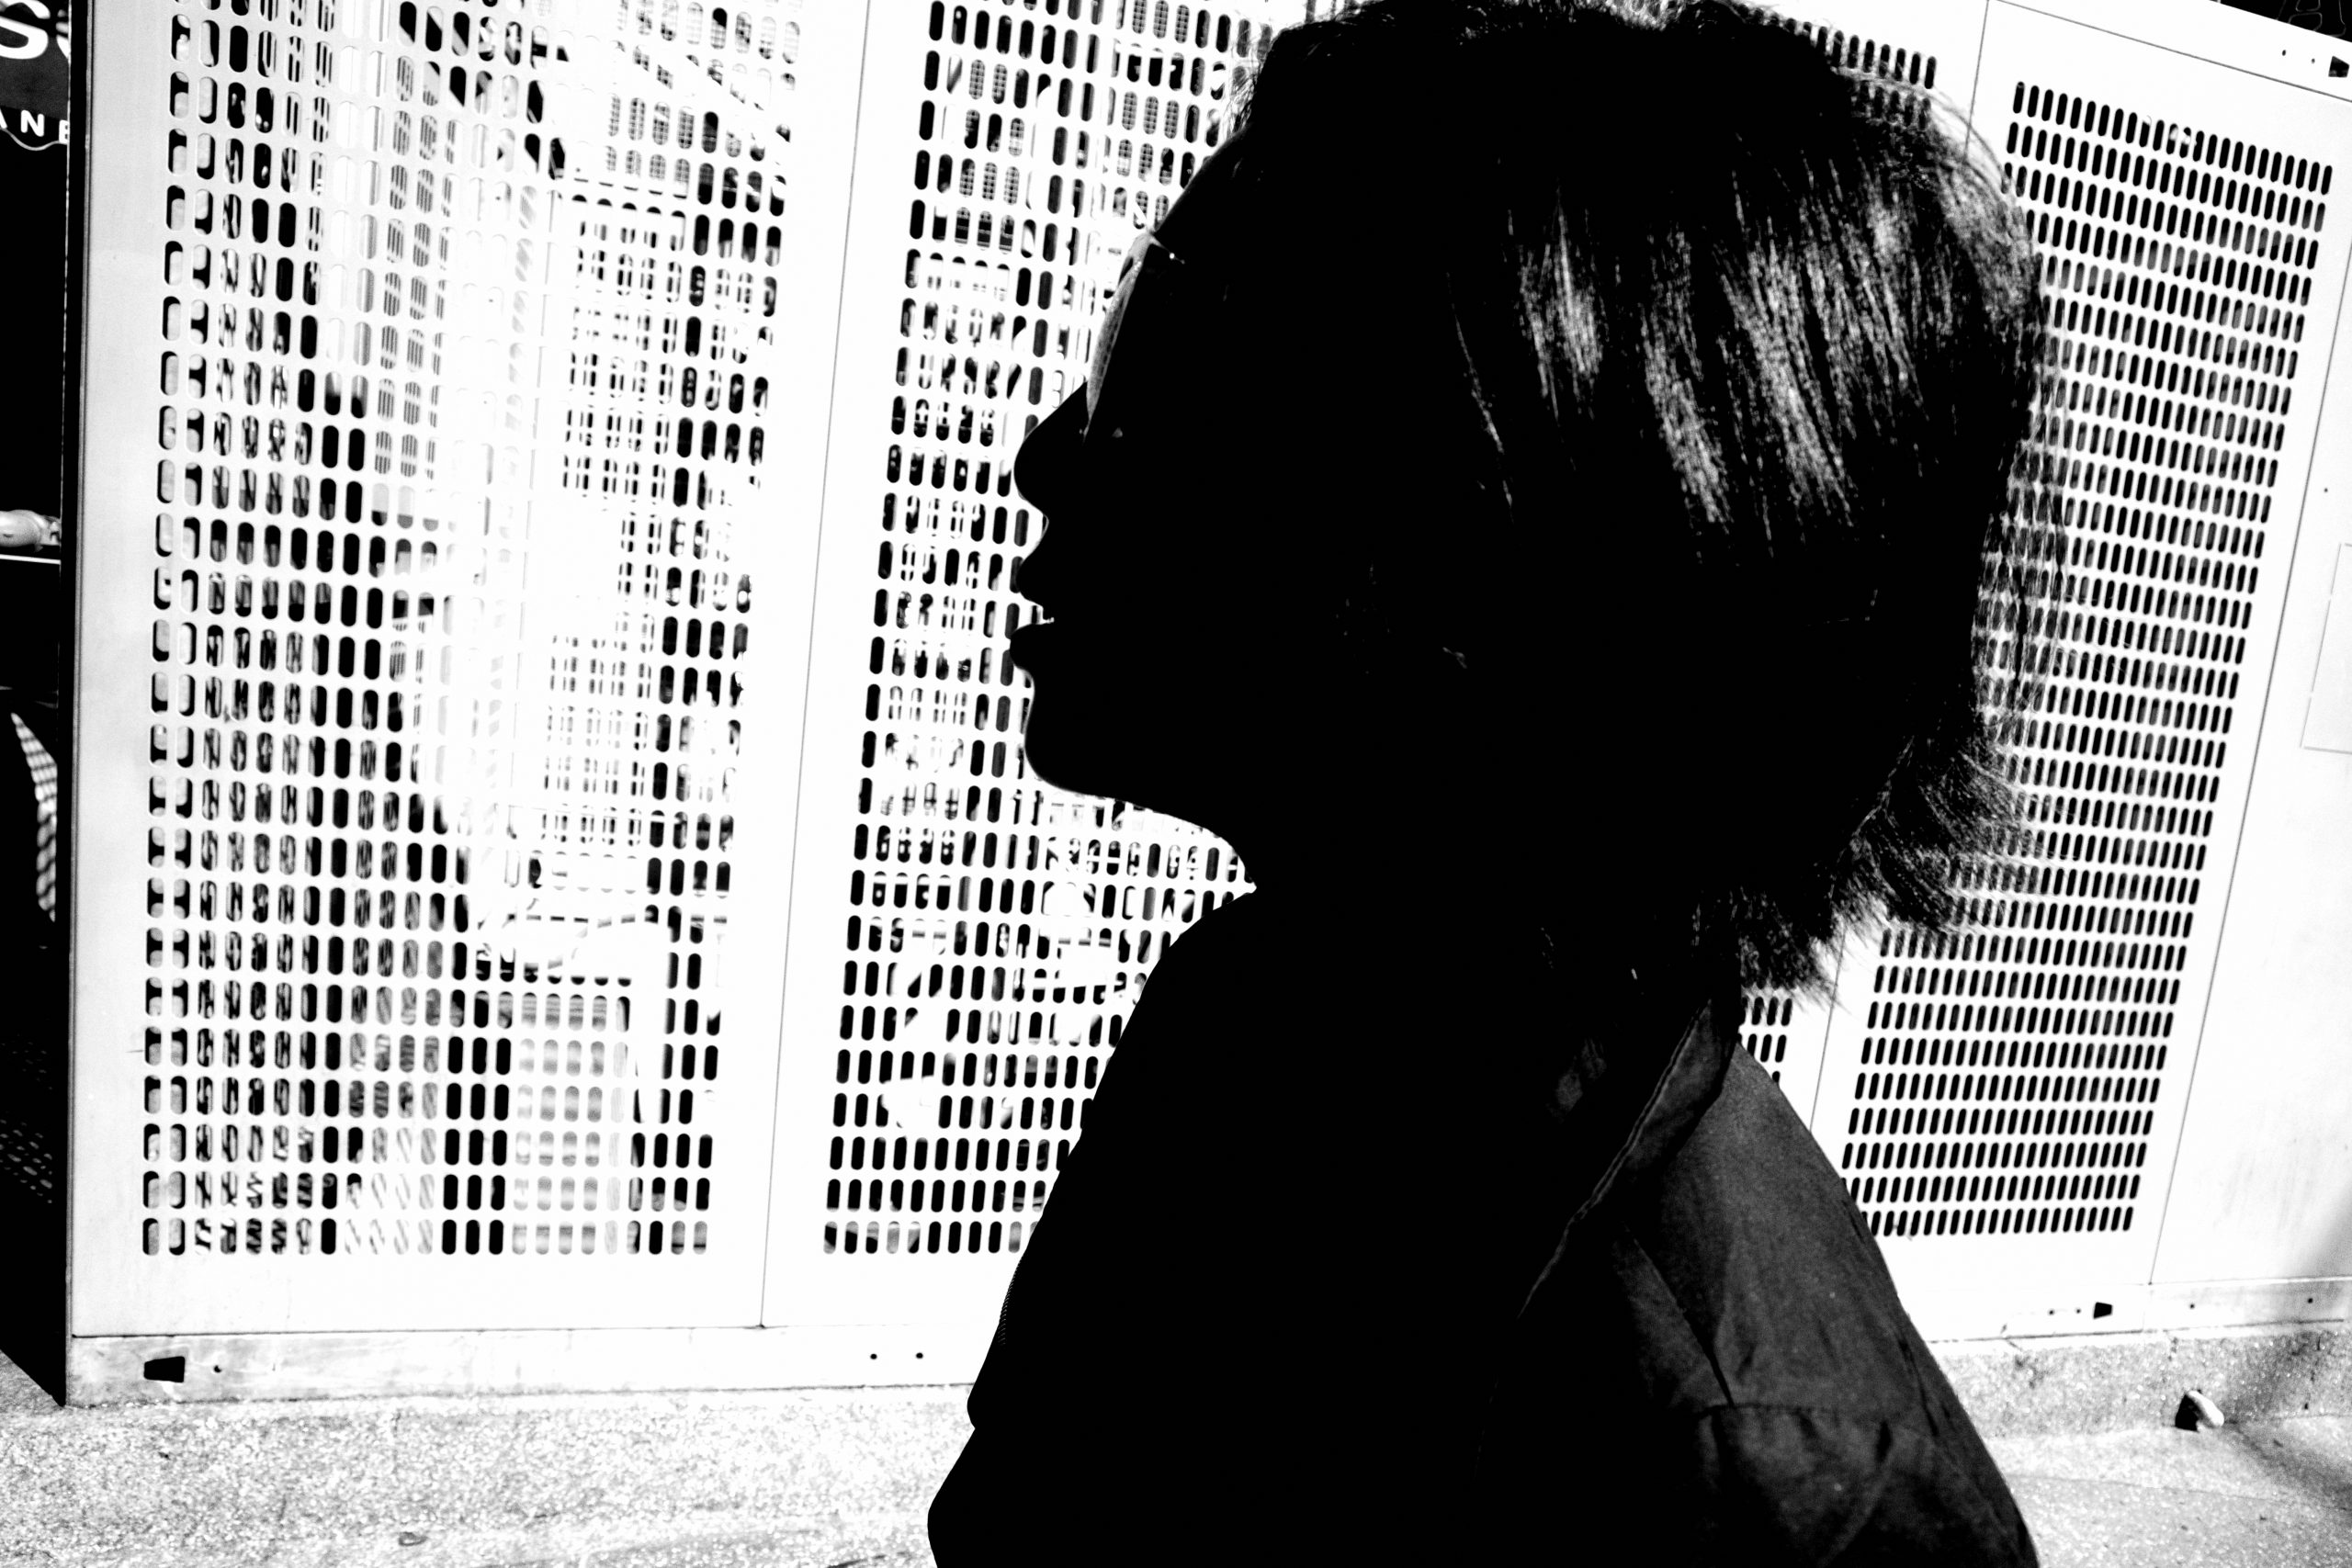 Vegas, 2019 #cindyproject #silhouette